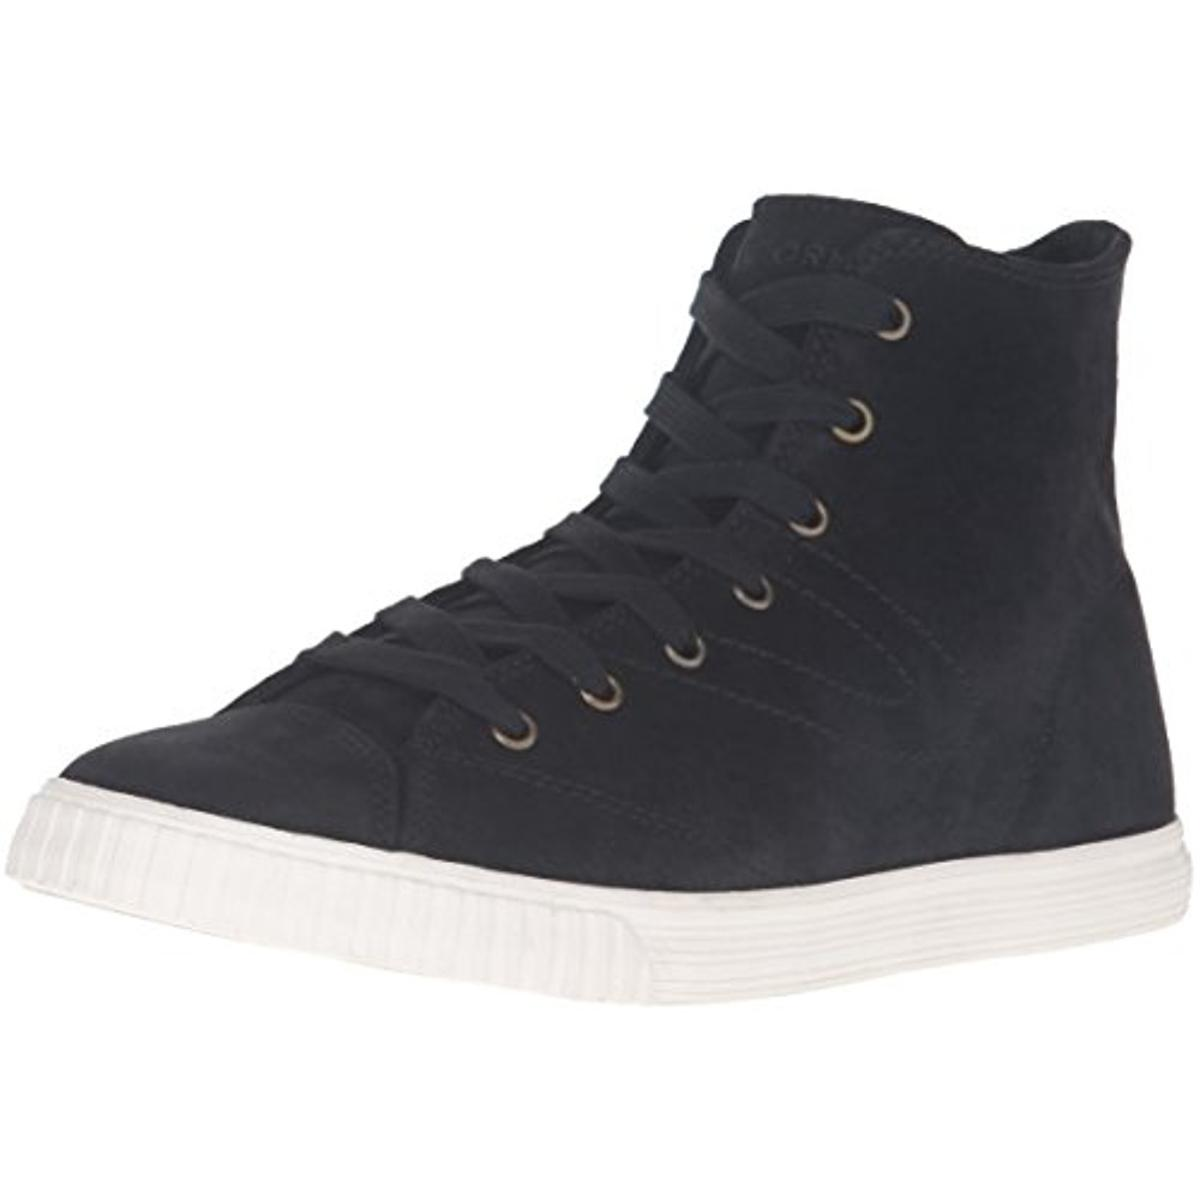 Tretorn Womens Matchhi3 Suede Hi-Top Fashion Sneakers by Tretorn